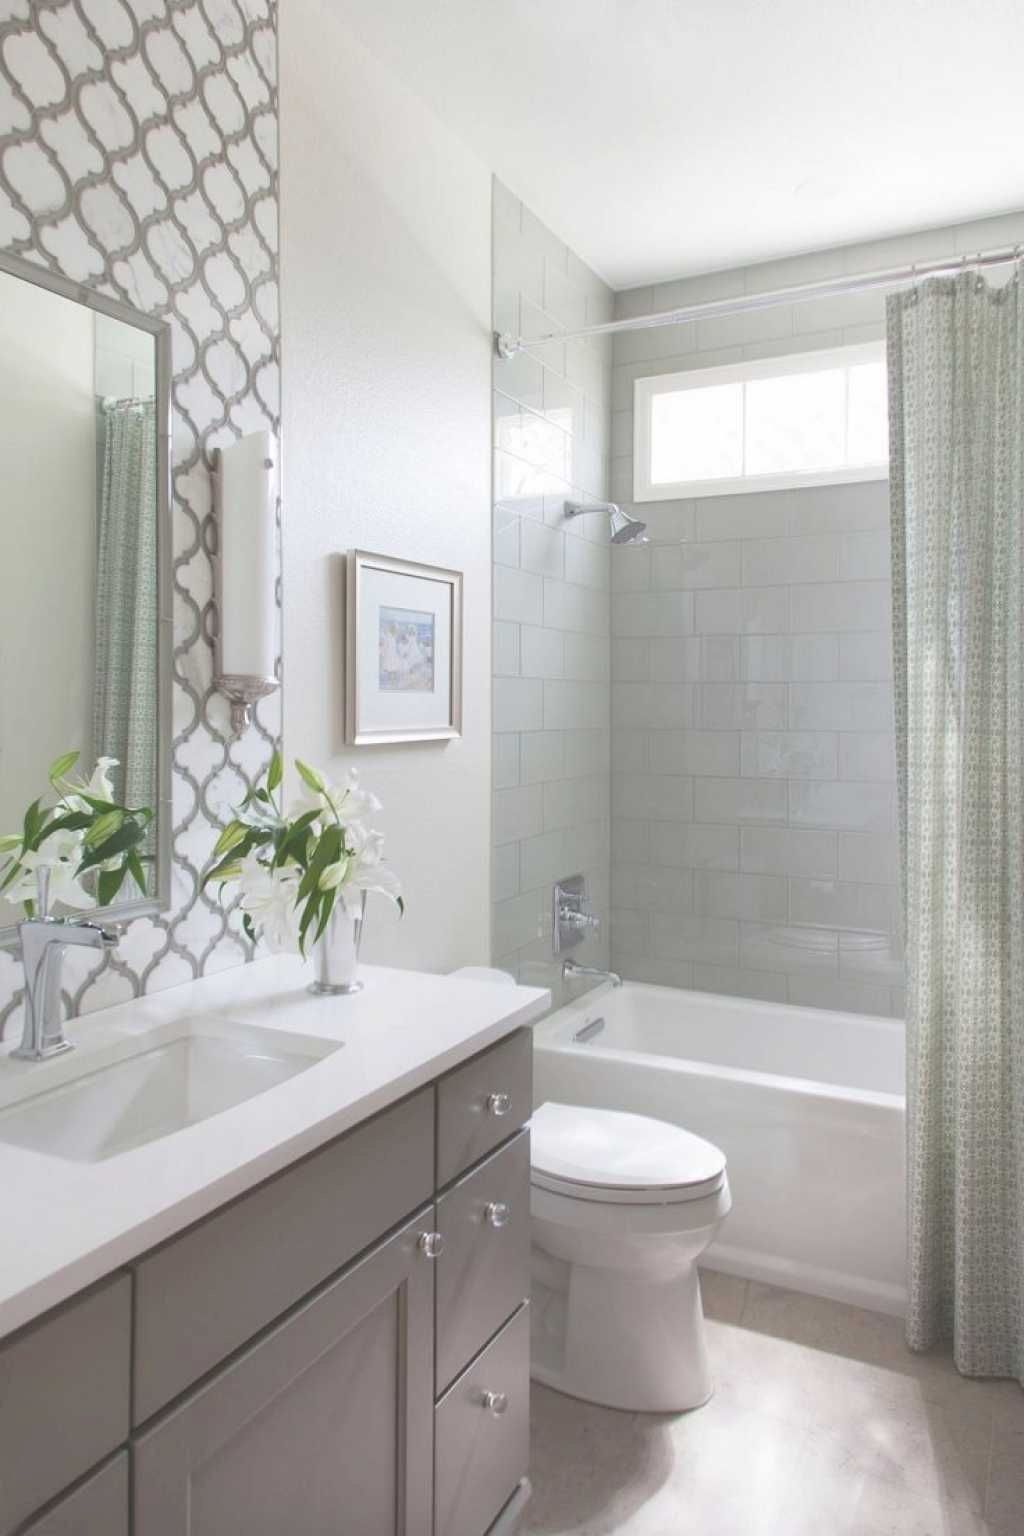 111 Awesome Small Bathroom Remodel Ideas On A Budget | nice ...